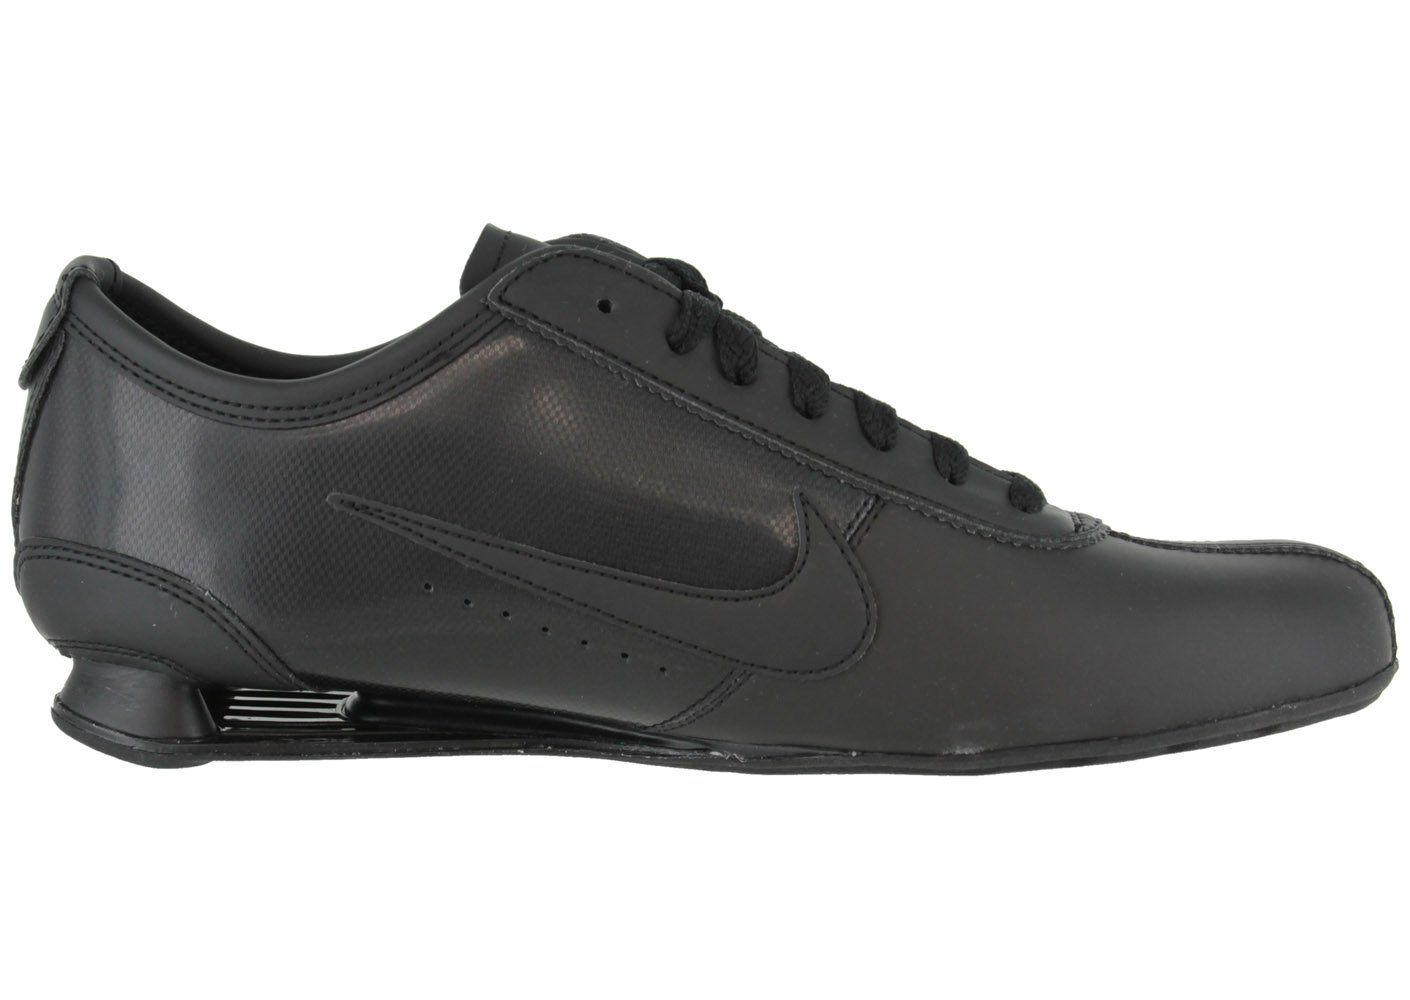 316317 044|Nike Shox Rivalry Black|46 US 12: Amazon.de: